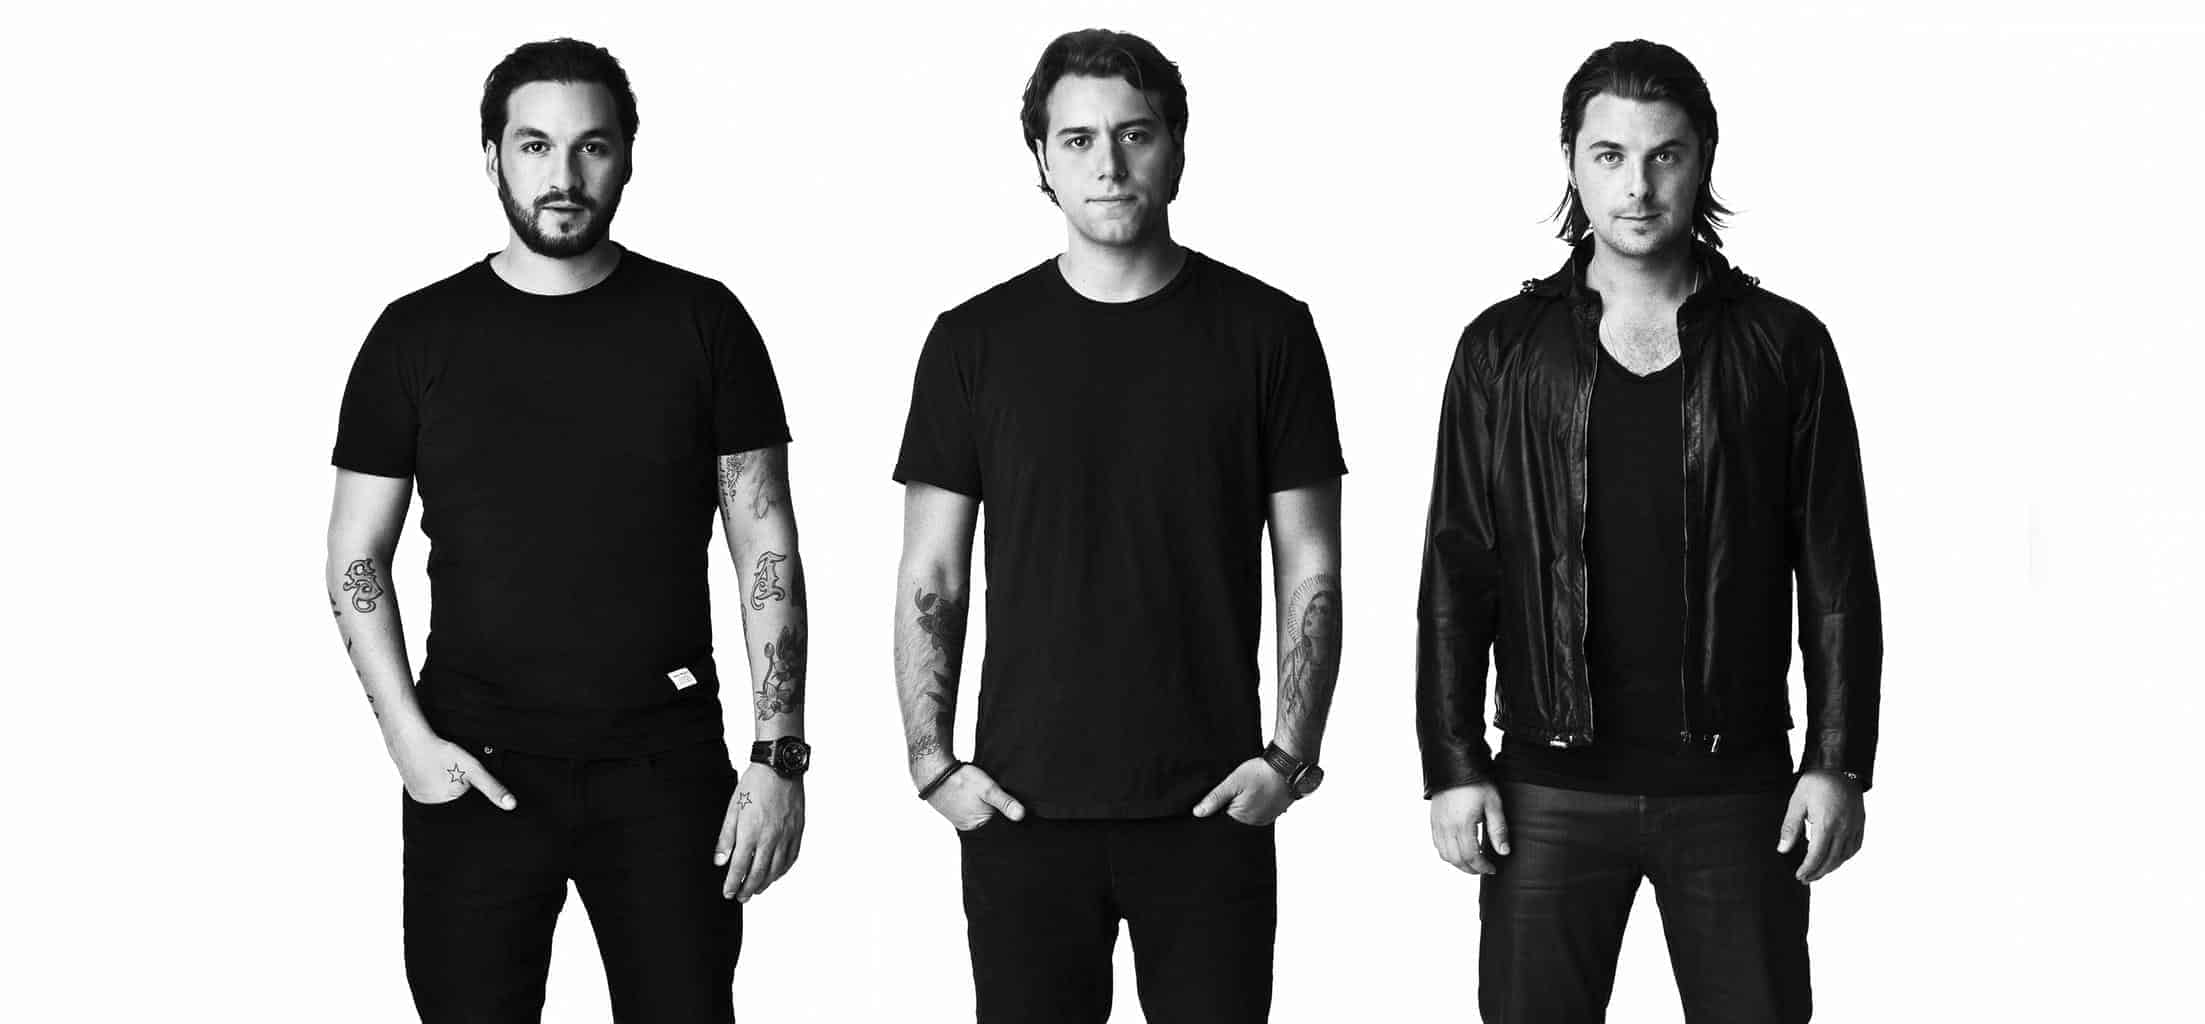 Swedish House Mafia Reunion at Coachella 2017